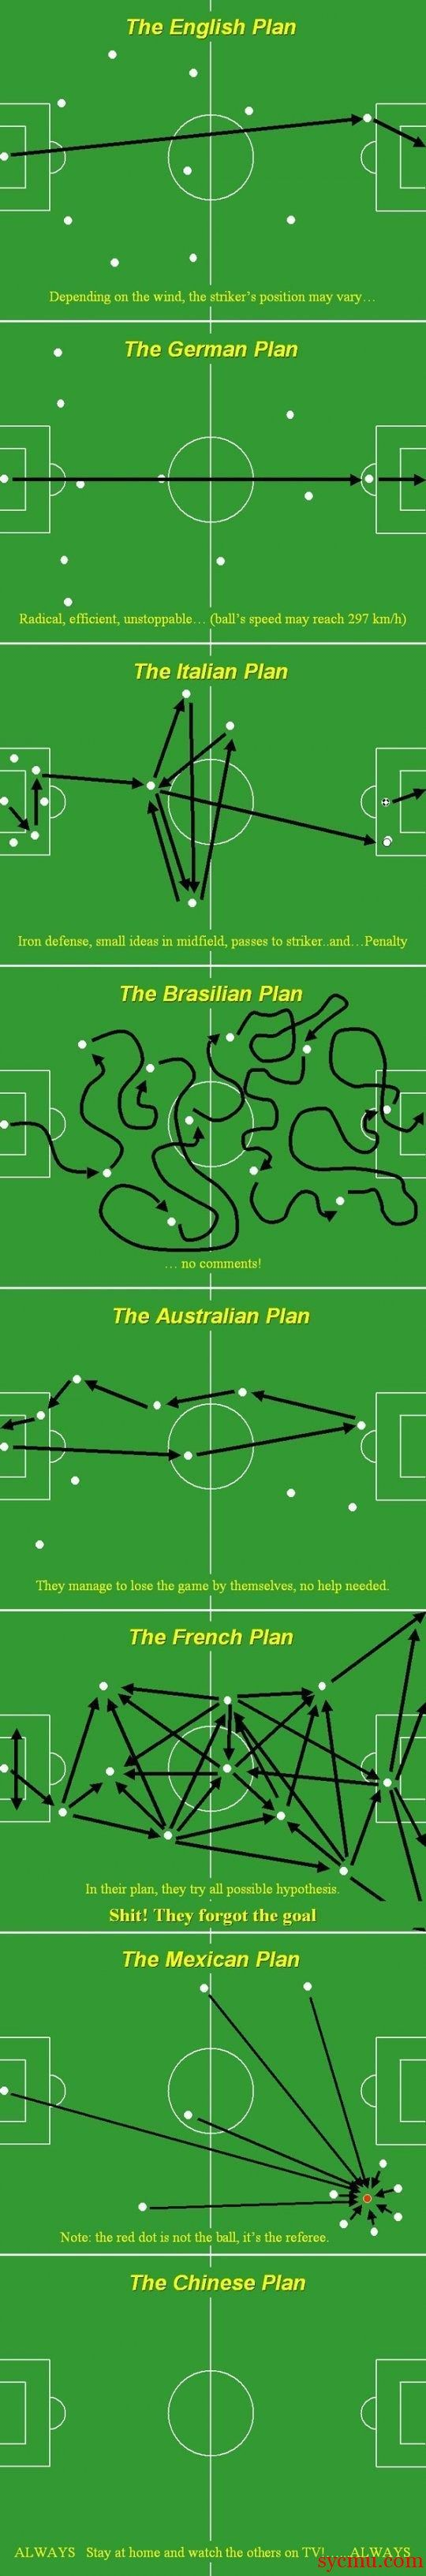 World Cup Strategies